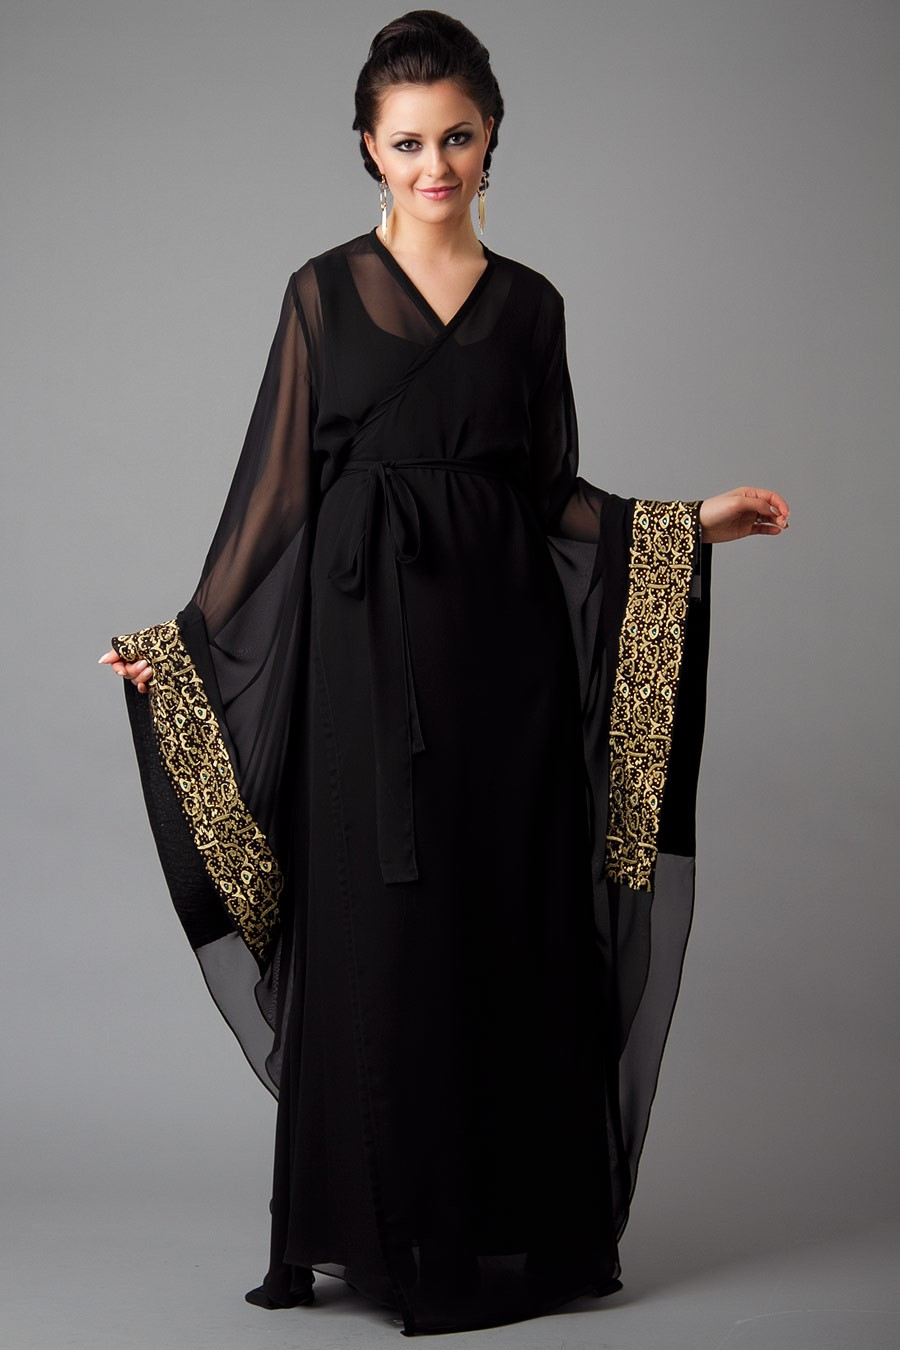 patterns lets catch the whole new looks of islamic abaya dresses